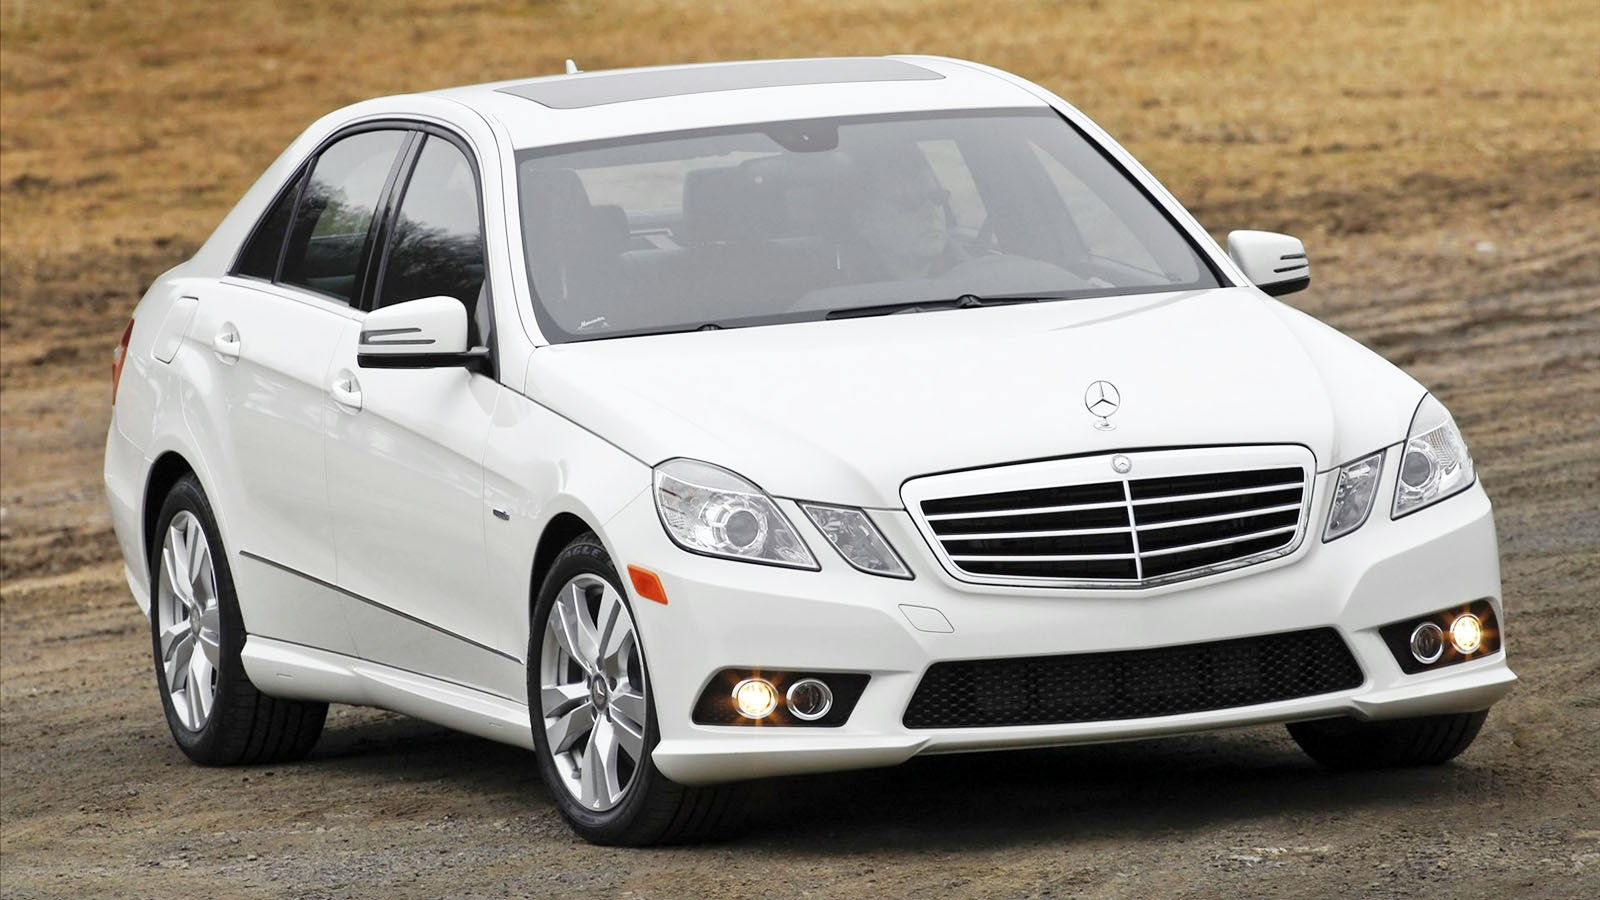 E350 at Birdies For The Brave